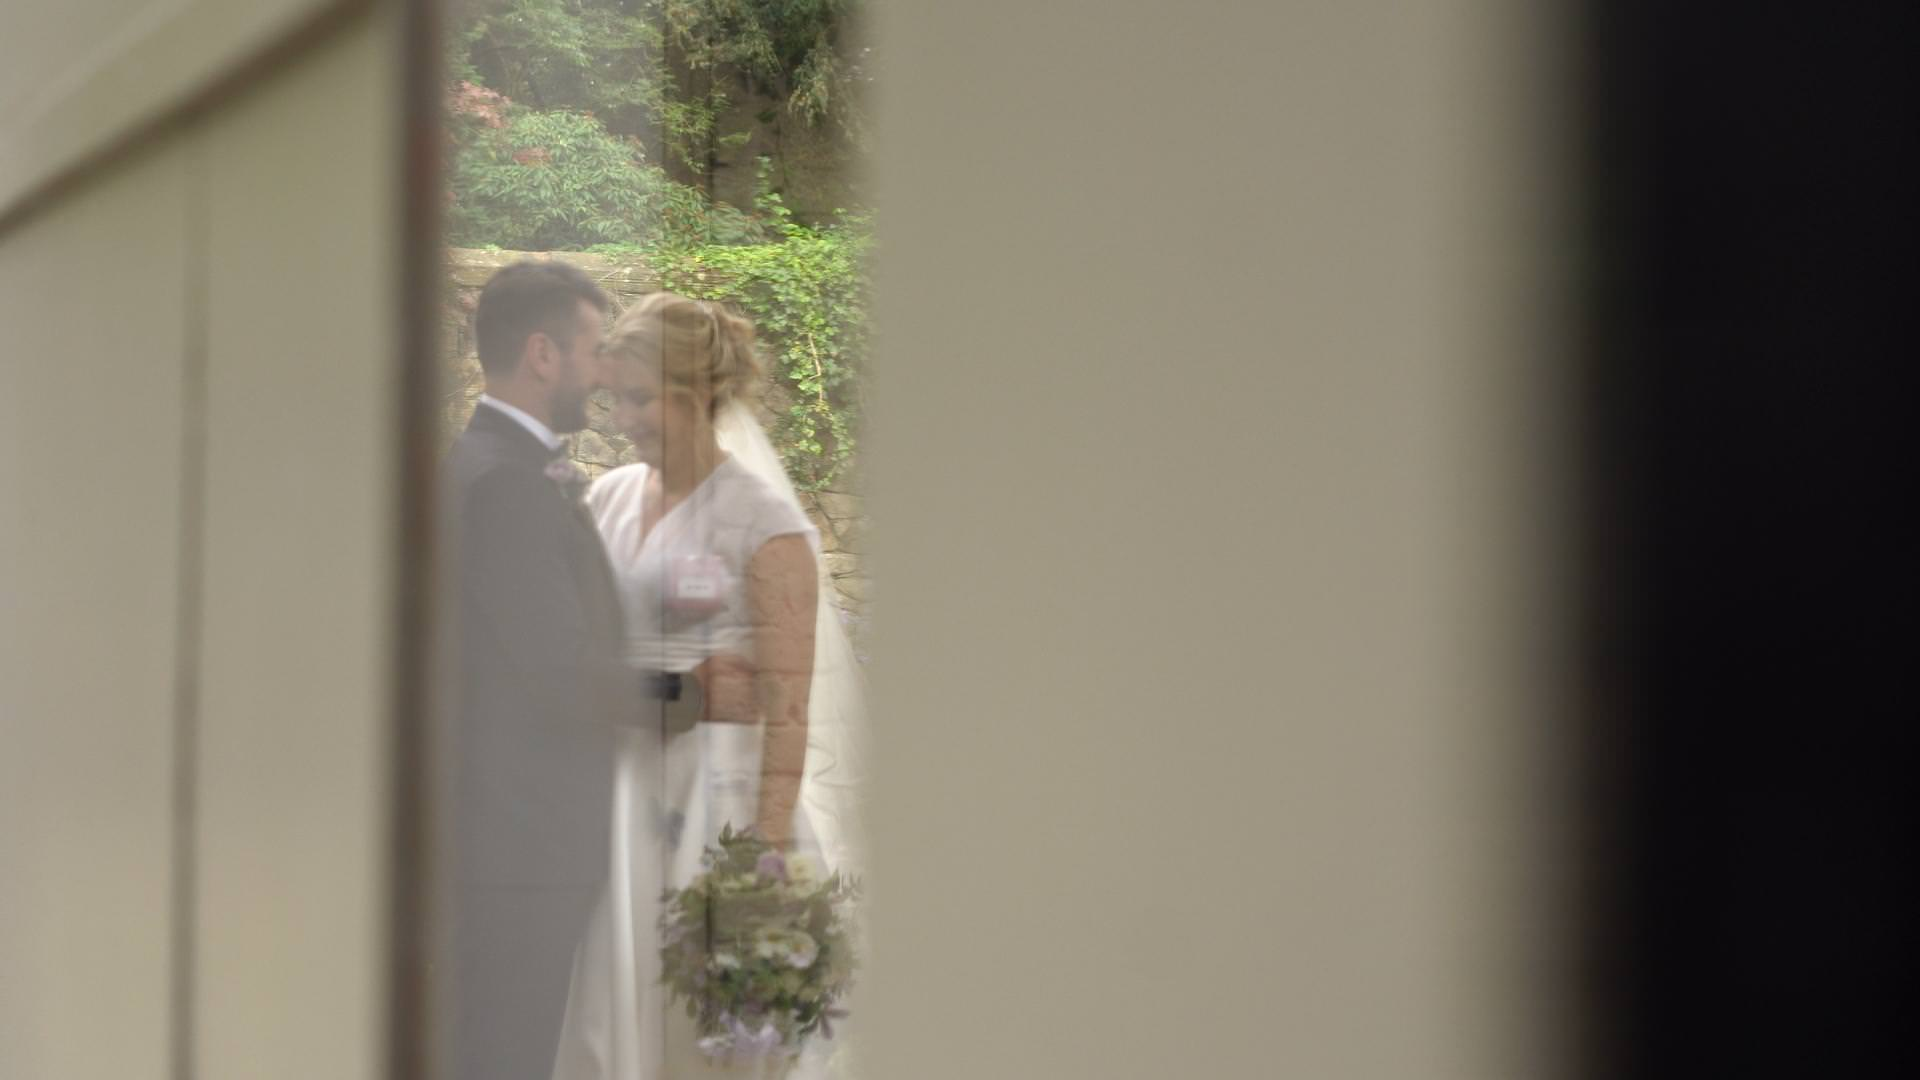 a video reflection in the barn door at Wyresdale Park